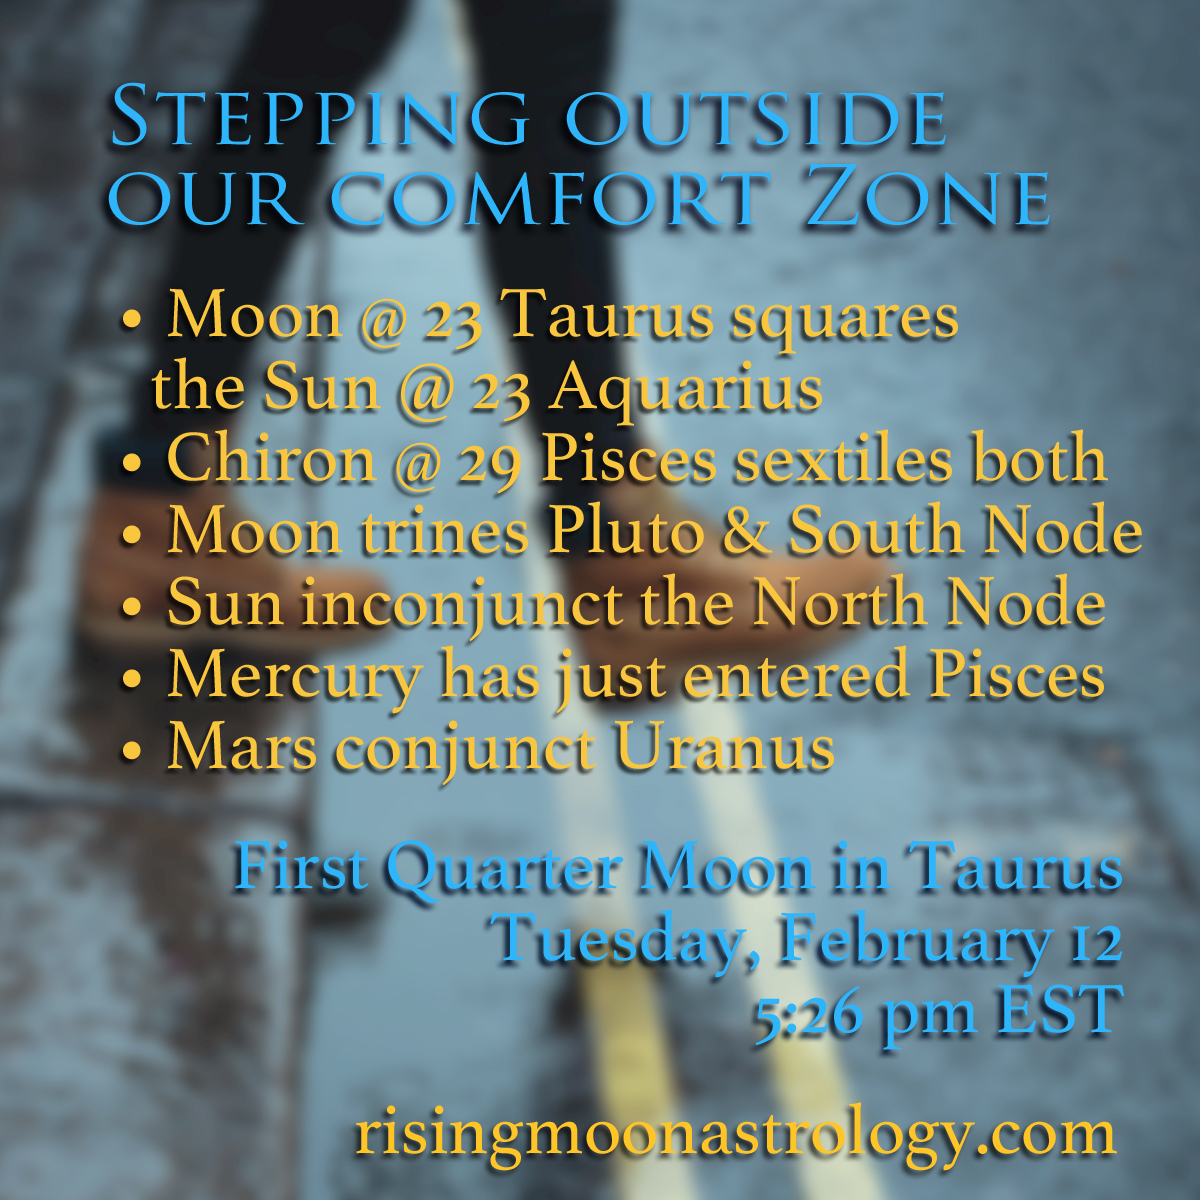 First Quarter Moon in Taurus: Stepping Out of Our Comfort Zone